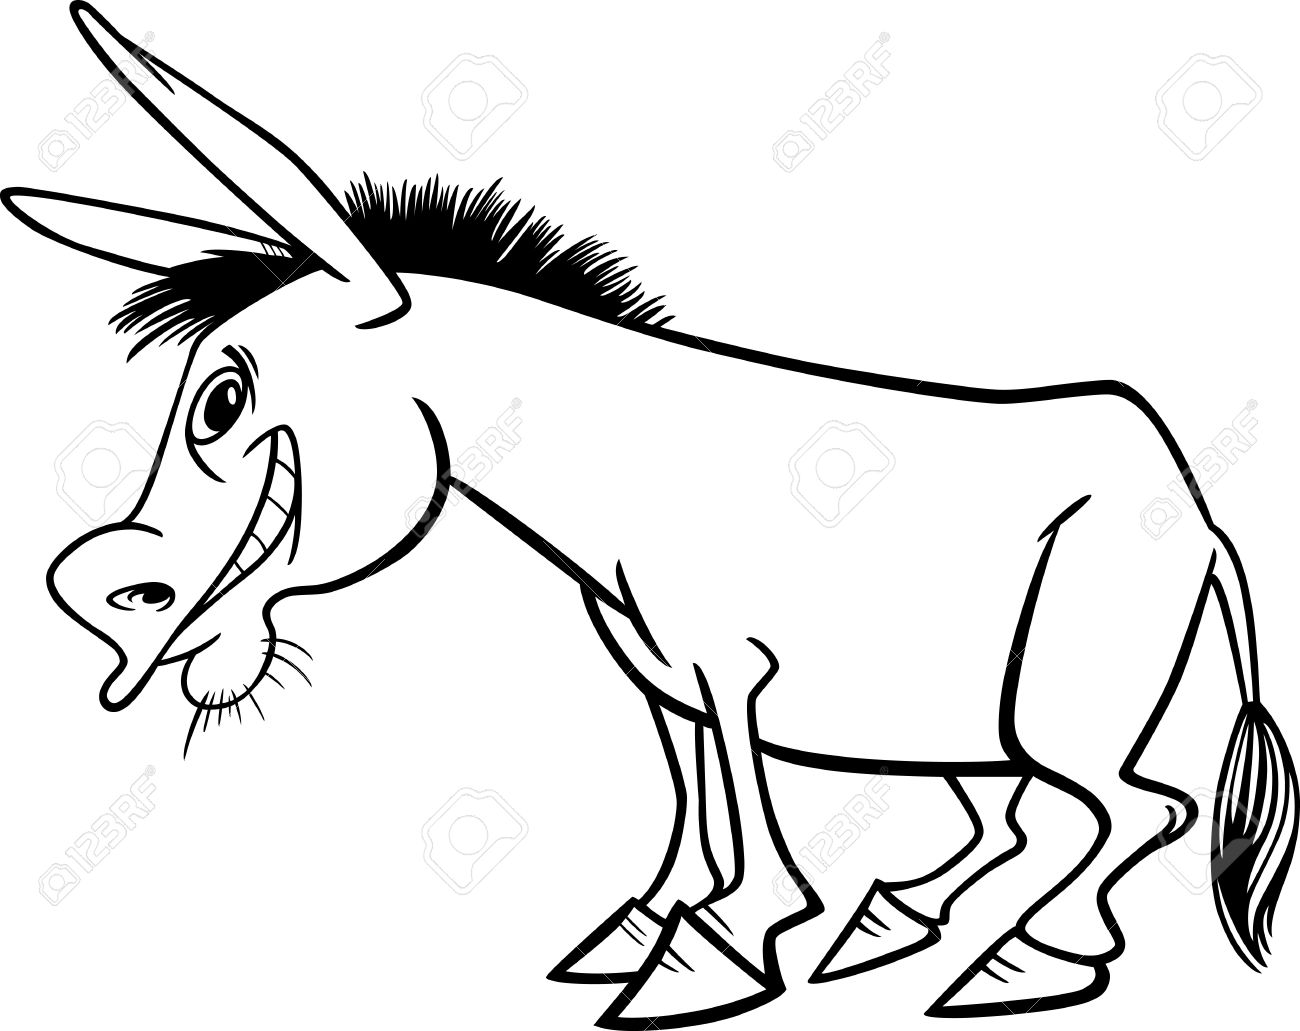 Black and white donkey clipart 2 » Clipart Station.